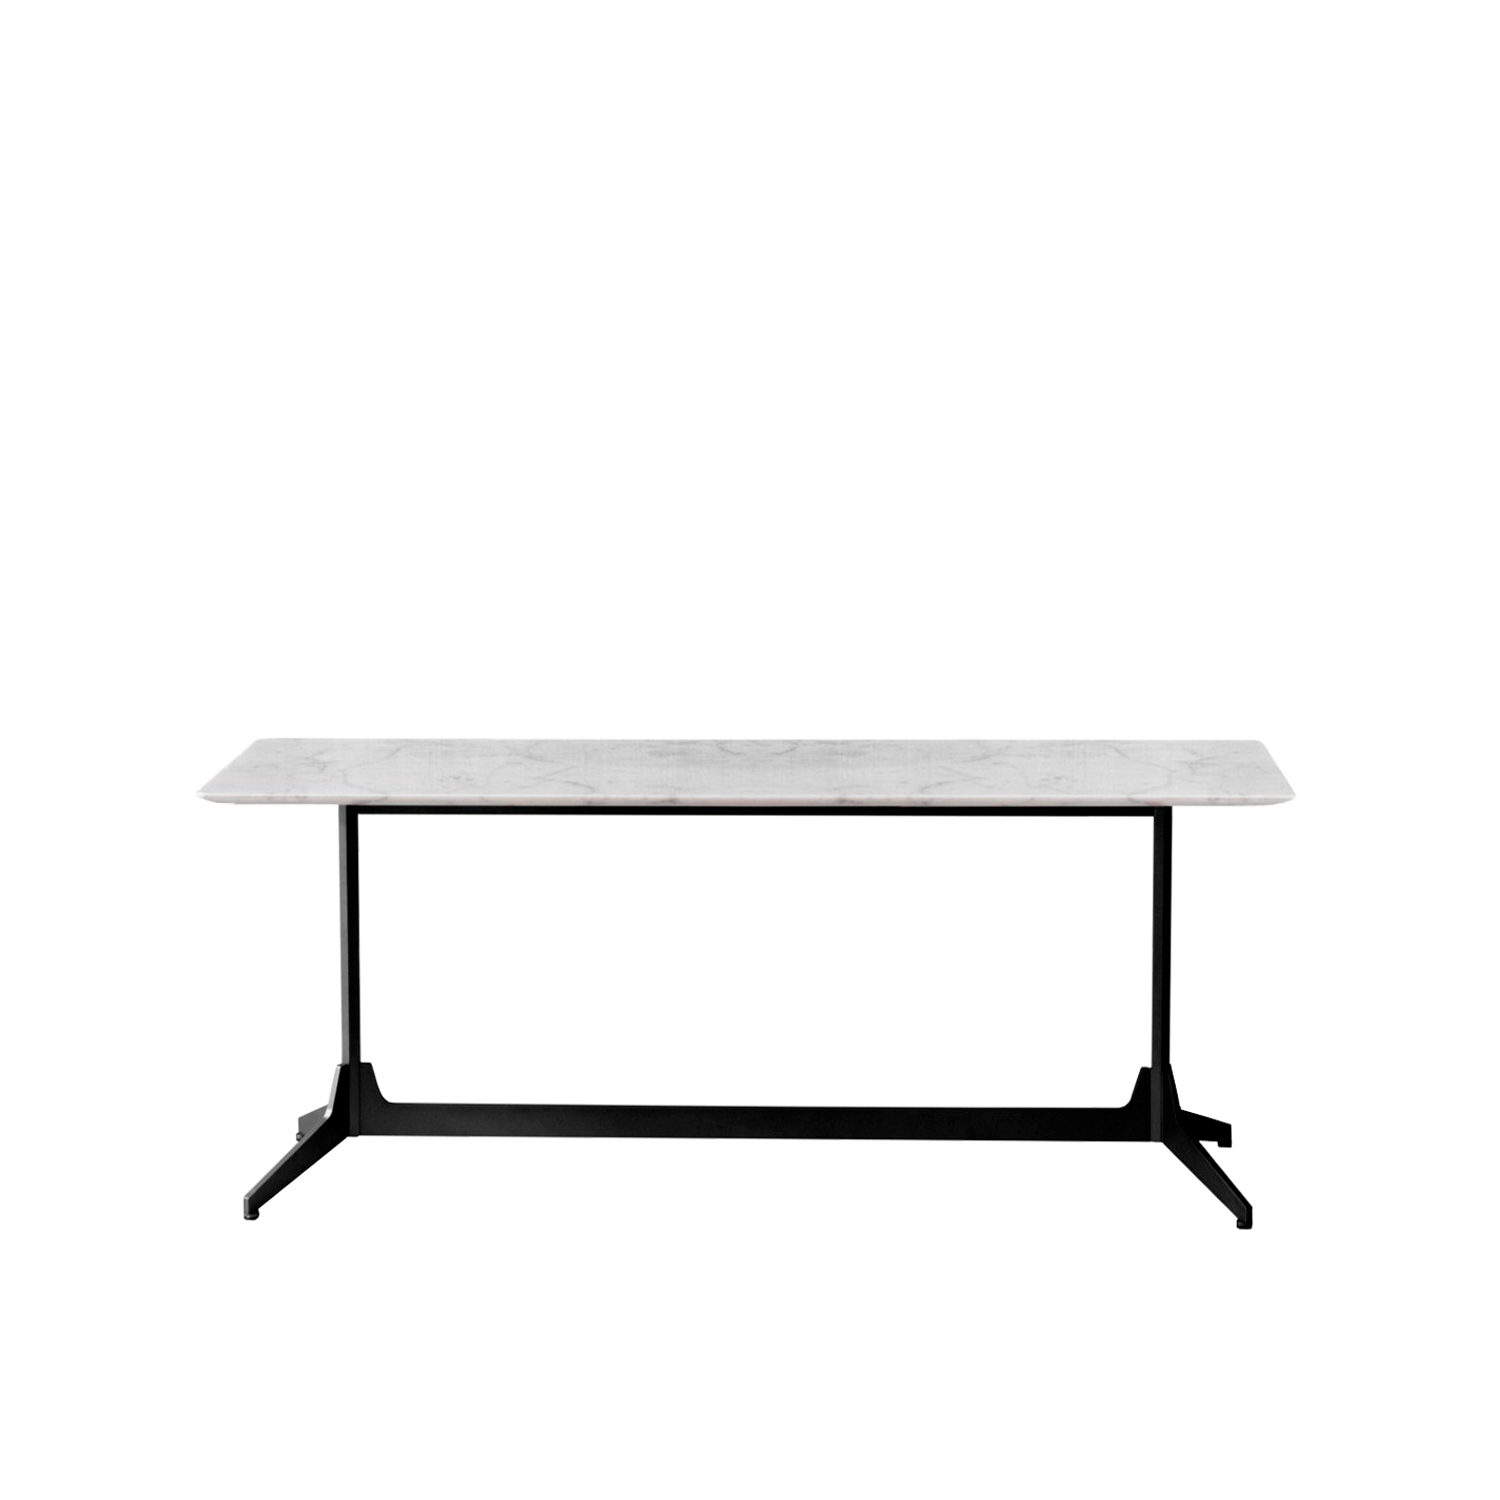 Hexa Console Table  - Hexa is a rectangular console with a marble top.‎